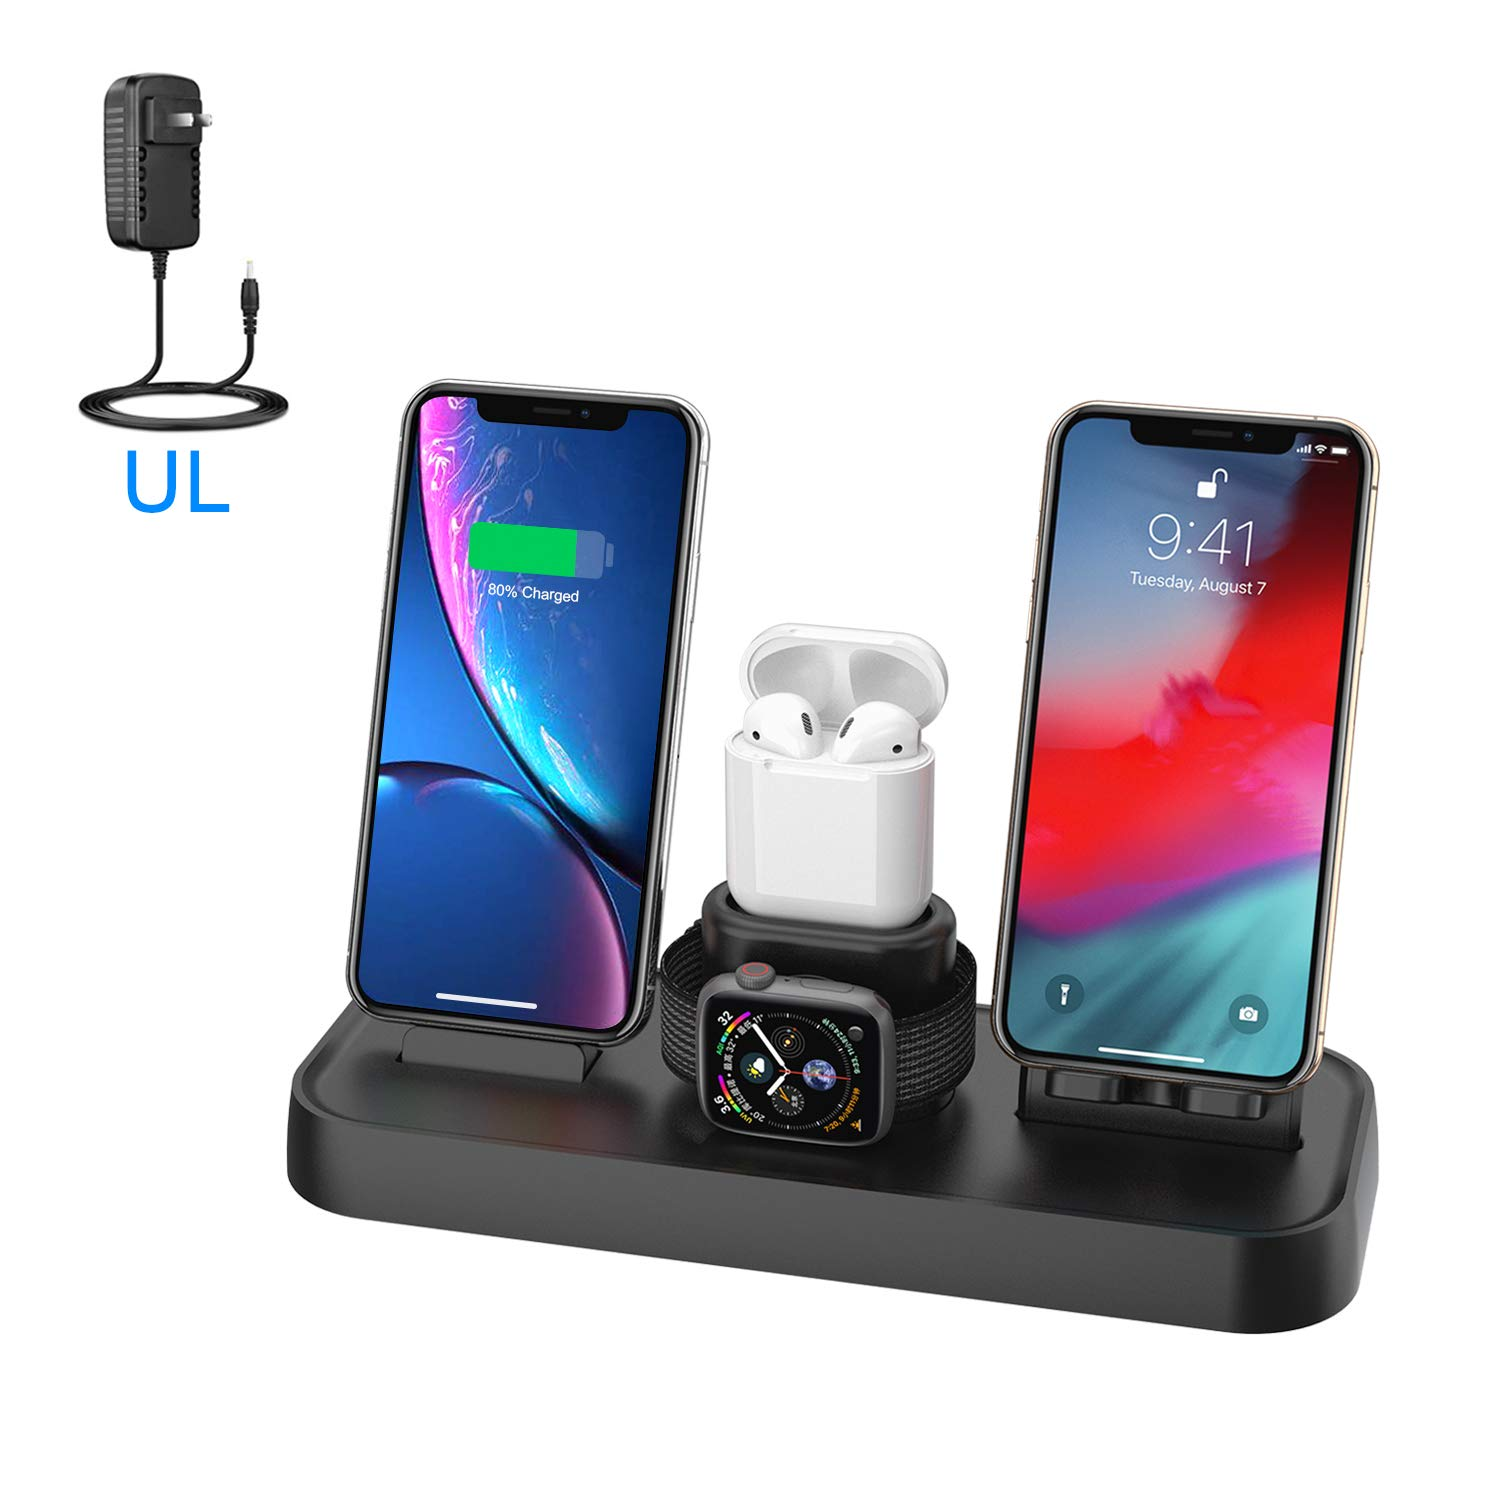 Wireless Charger, 4 in 1 Charging Station for Apple, Wireless Charging Pad Stand with Apple Watch Charger Stand, Apple Watch Charging Stand with AirPods Dock Wireless Charger for iPhone iWatch Airpods by XDODD